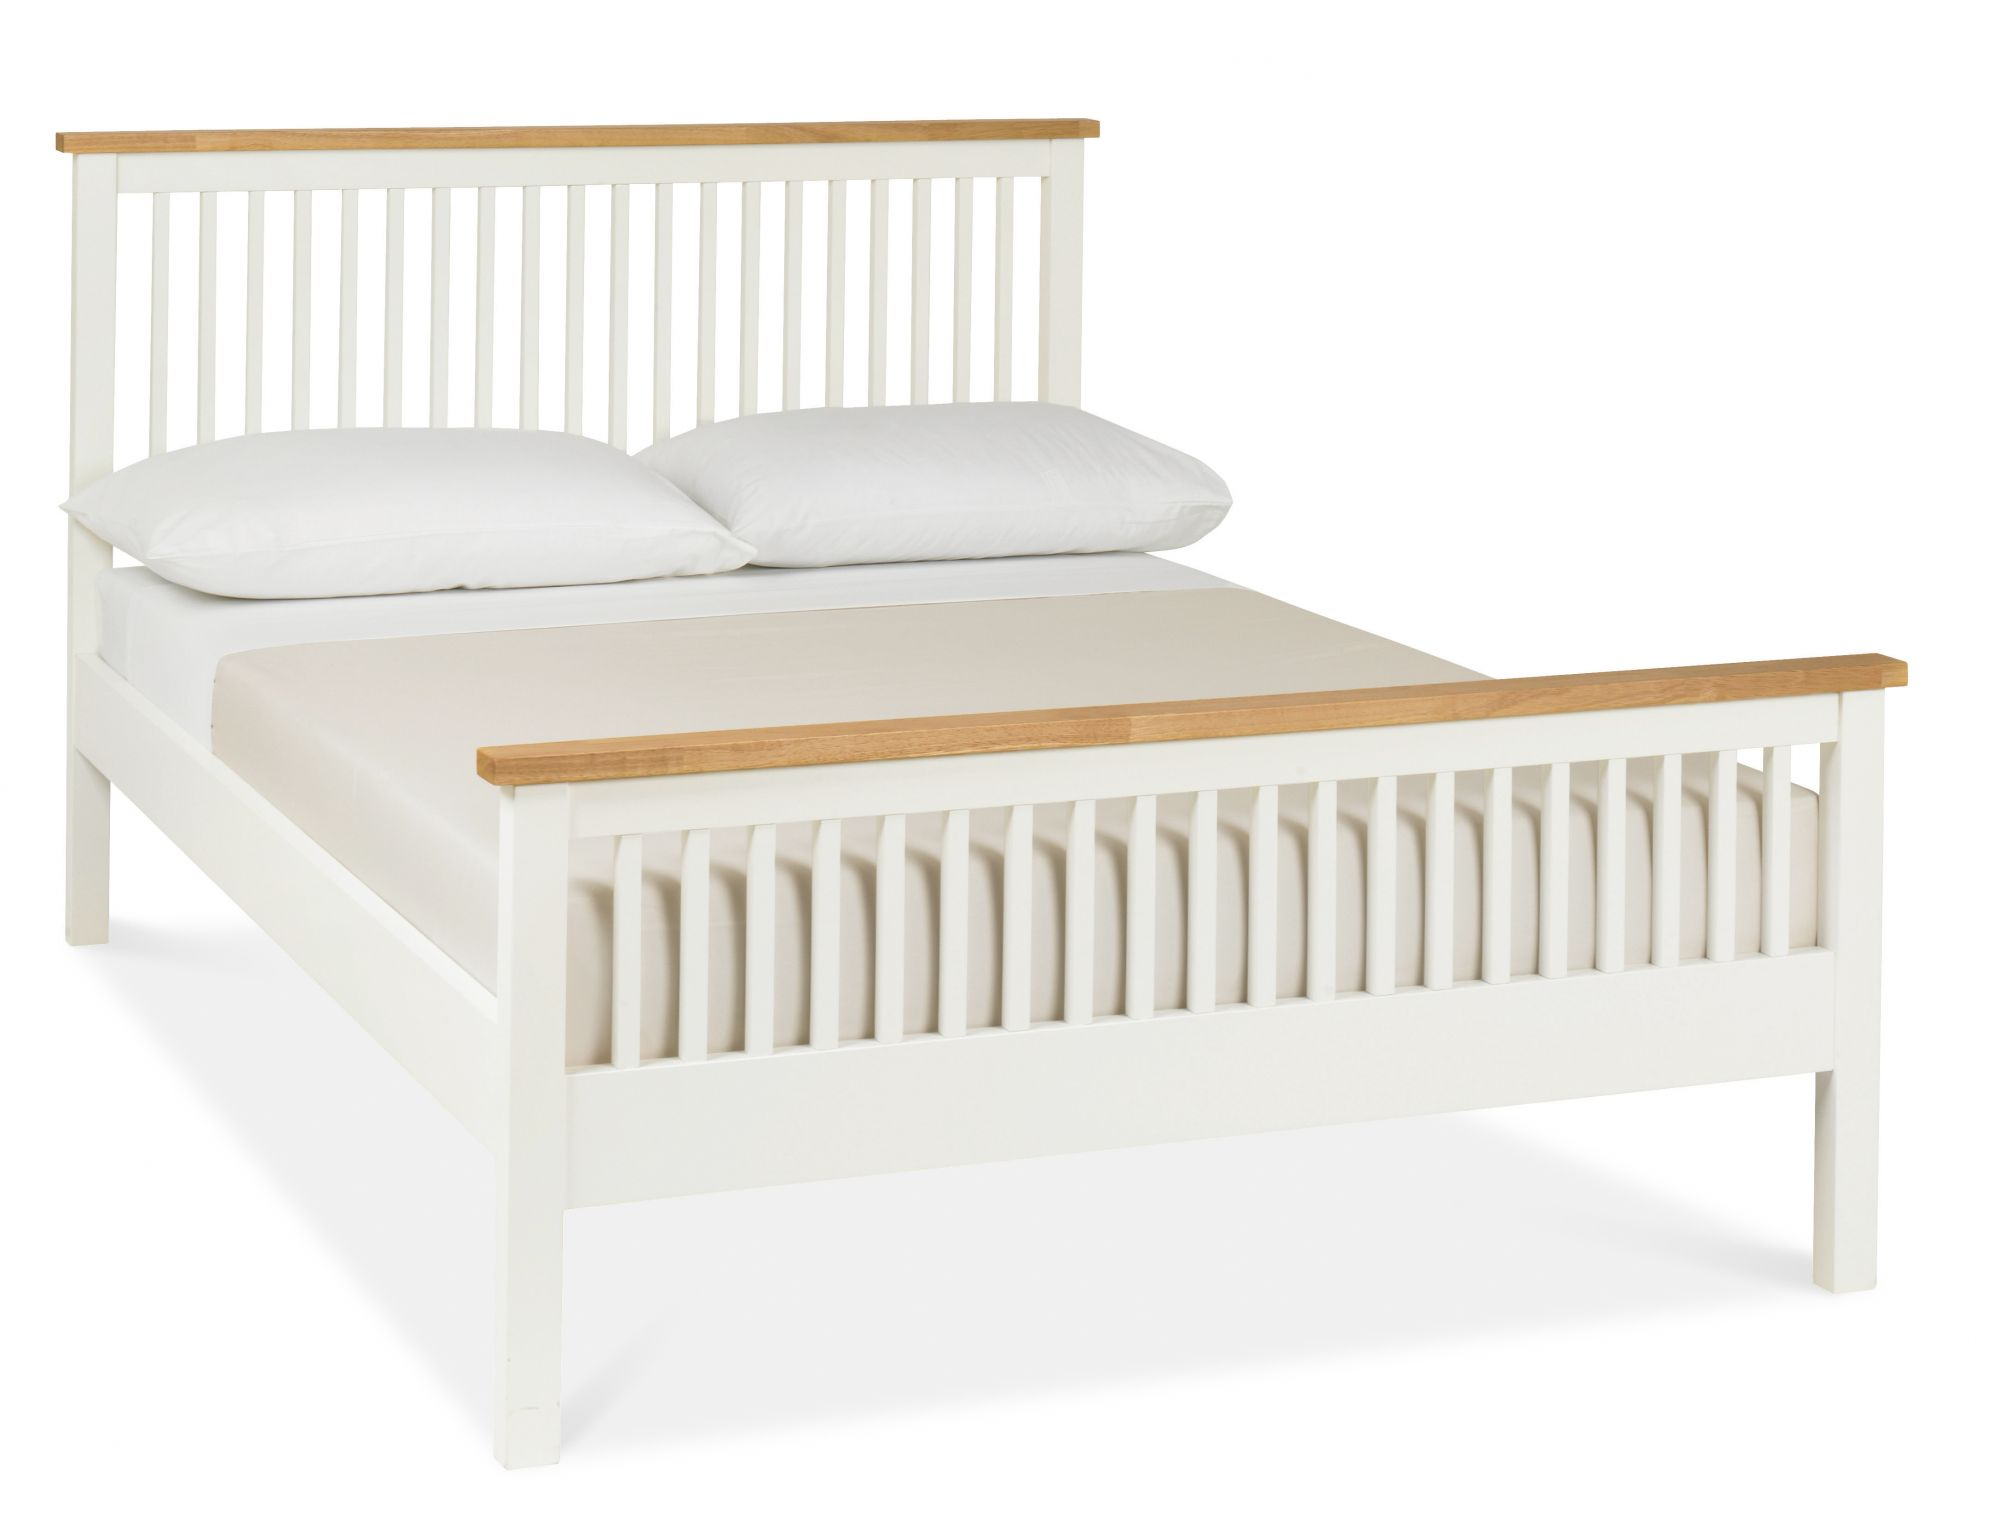 Atlanta Two Tone High Footend King Size Bed with Optional Storage